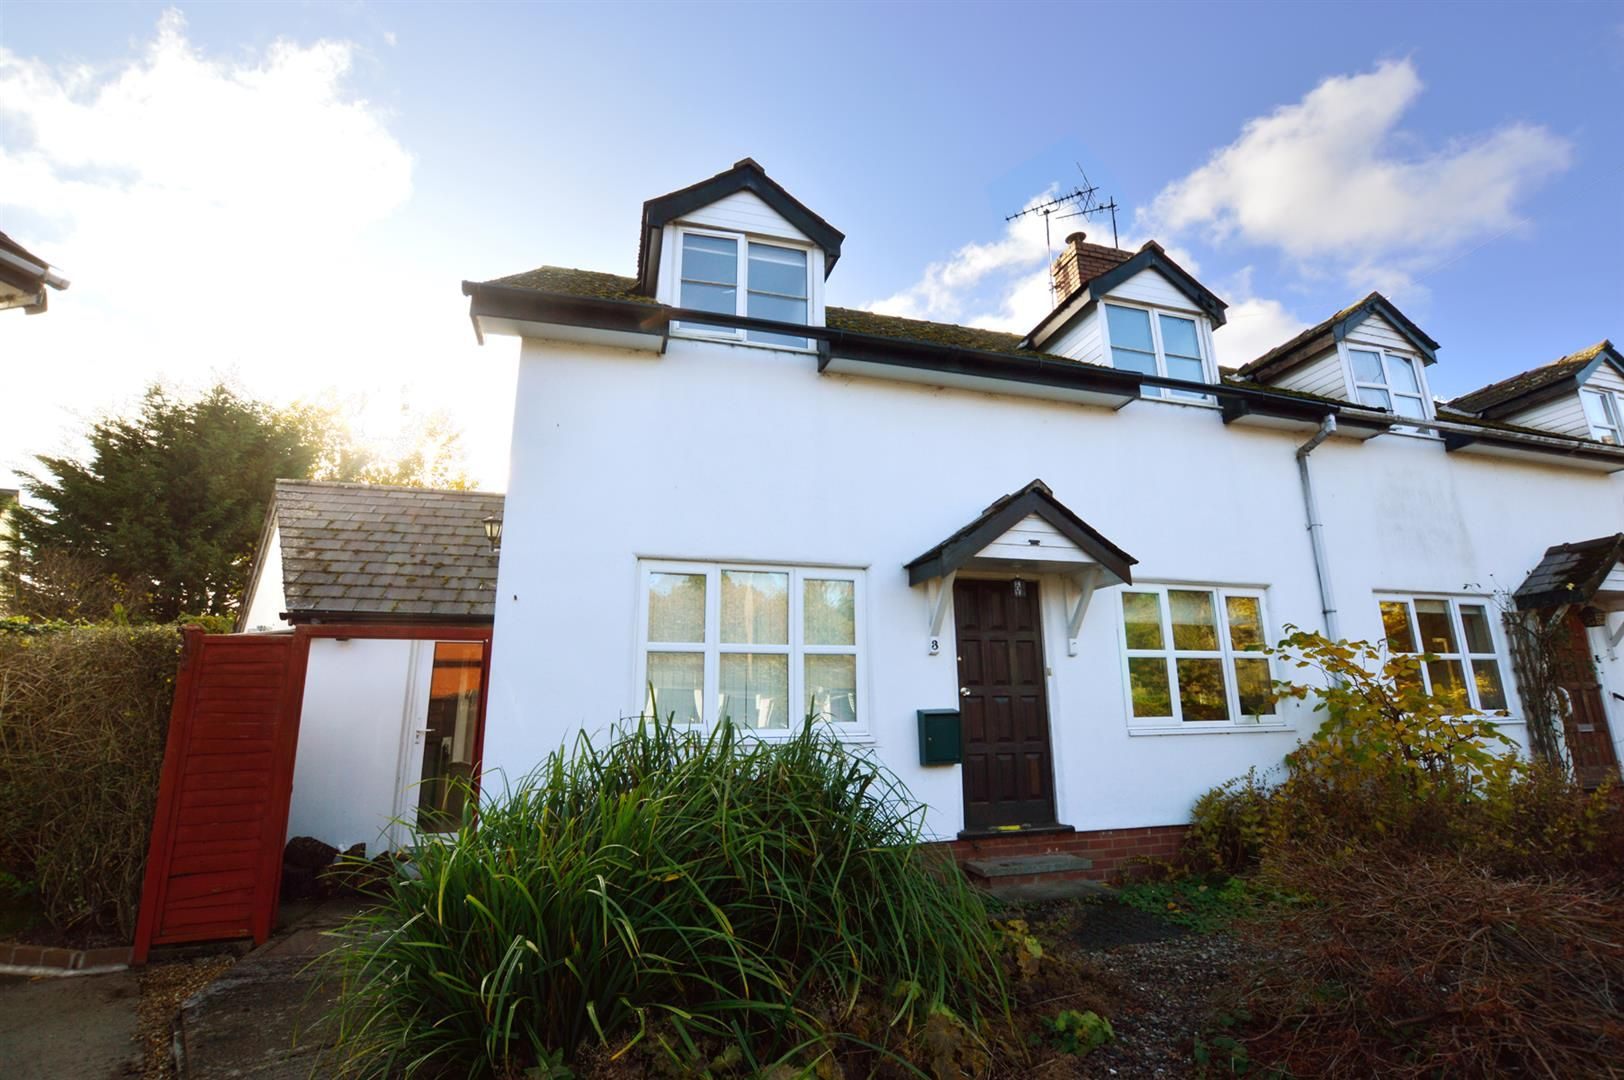 3 bed semi-detached for sale in Dilwyn 1